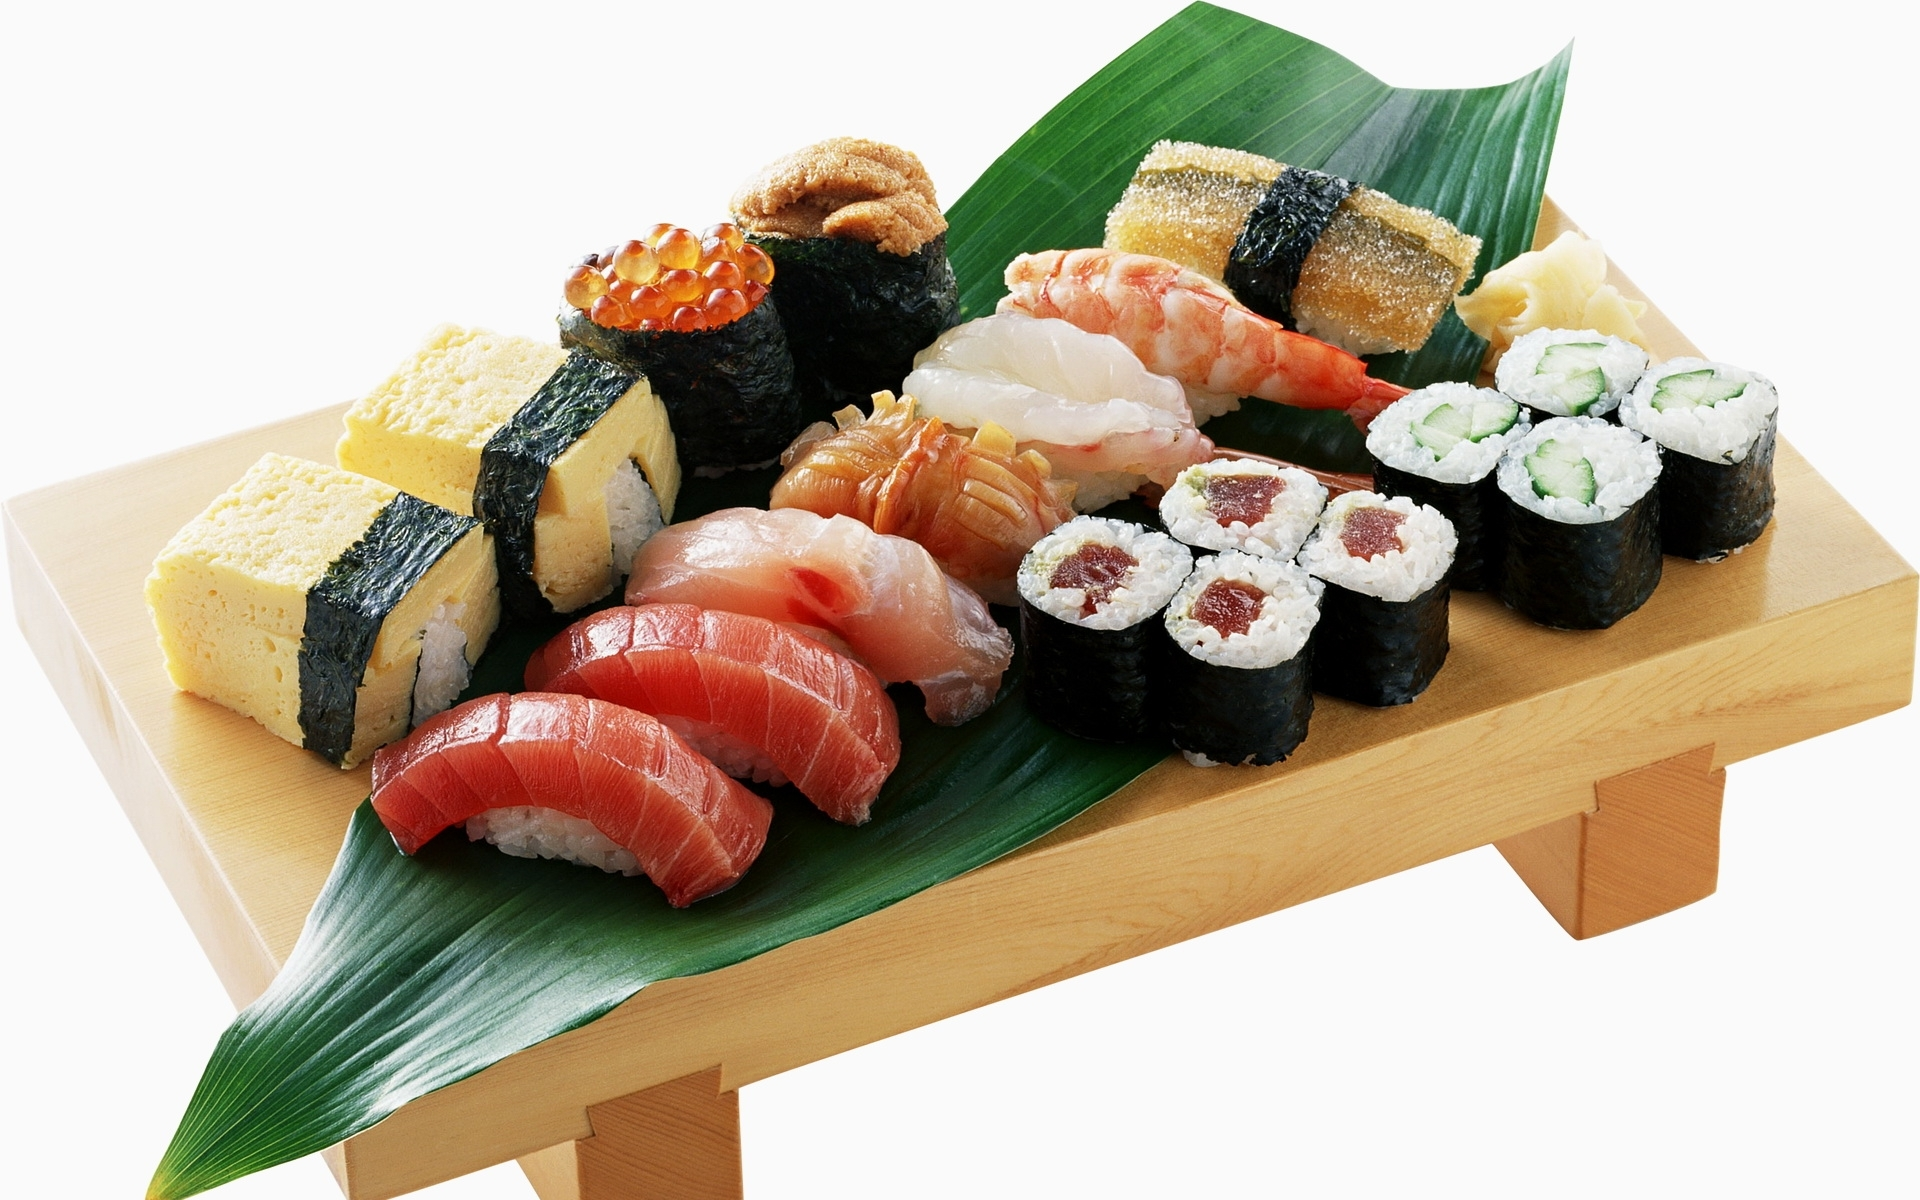 Japan Sushi 10 Health Benefits Of Sushi | The Luxury Spot